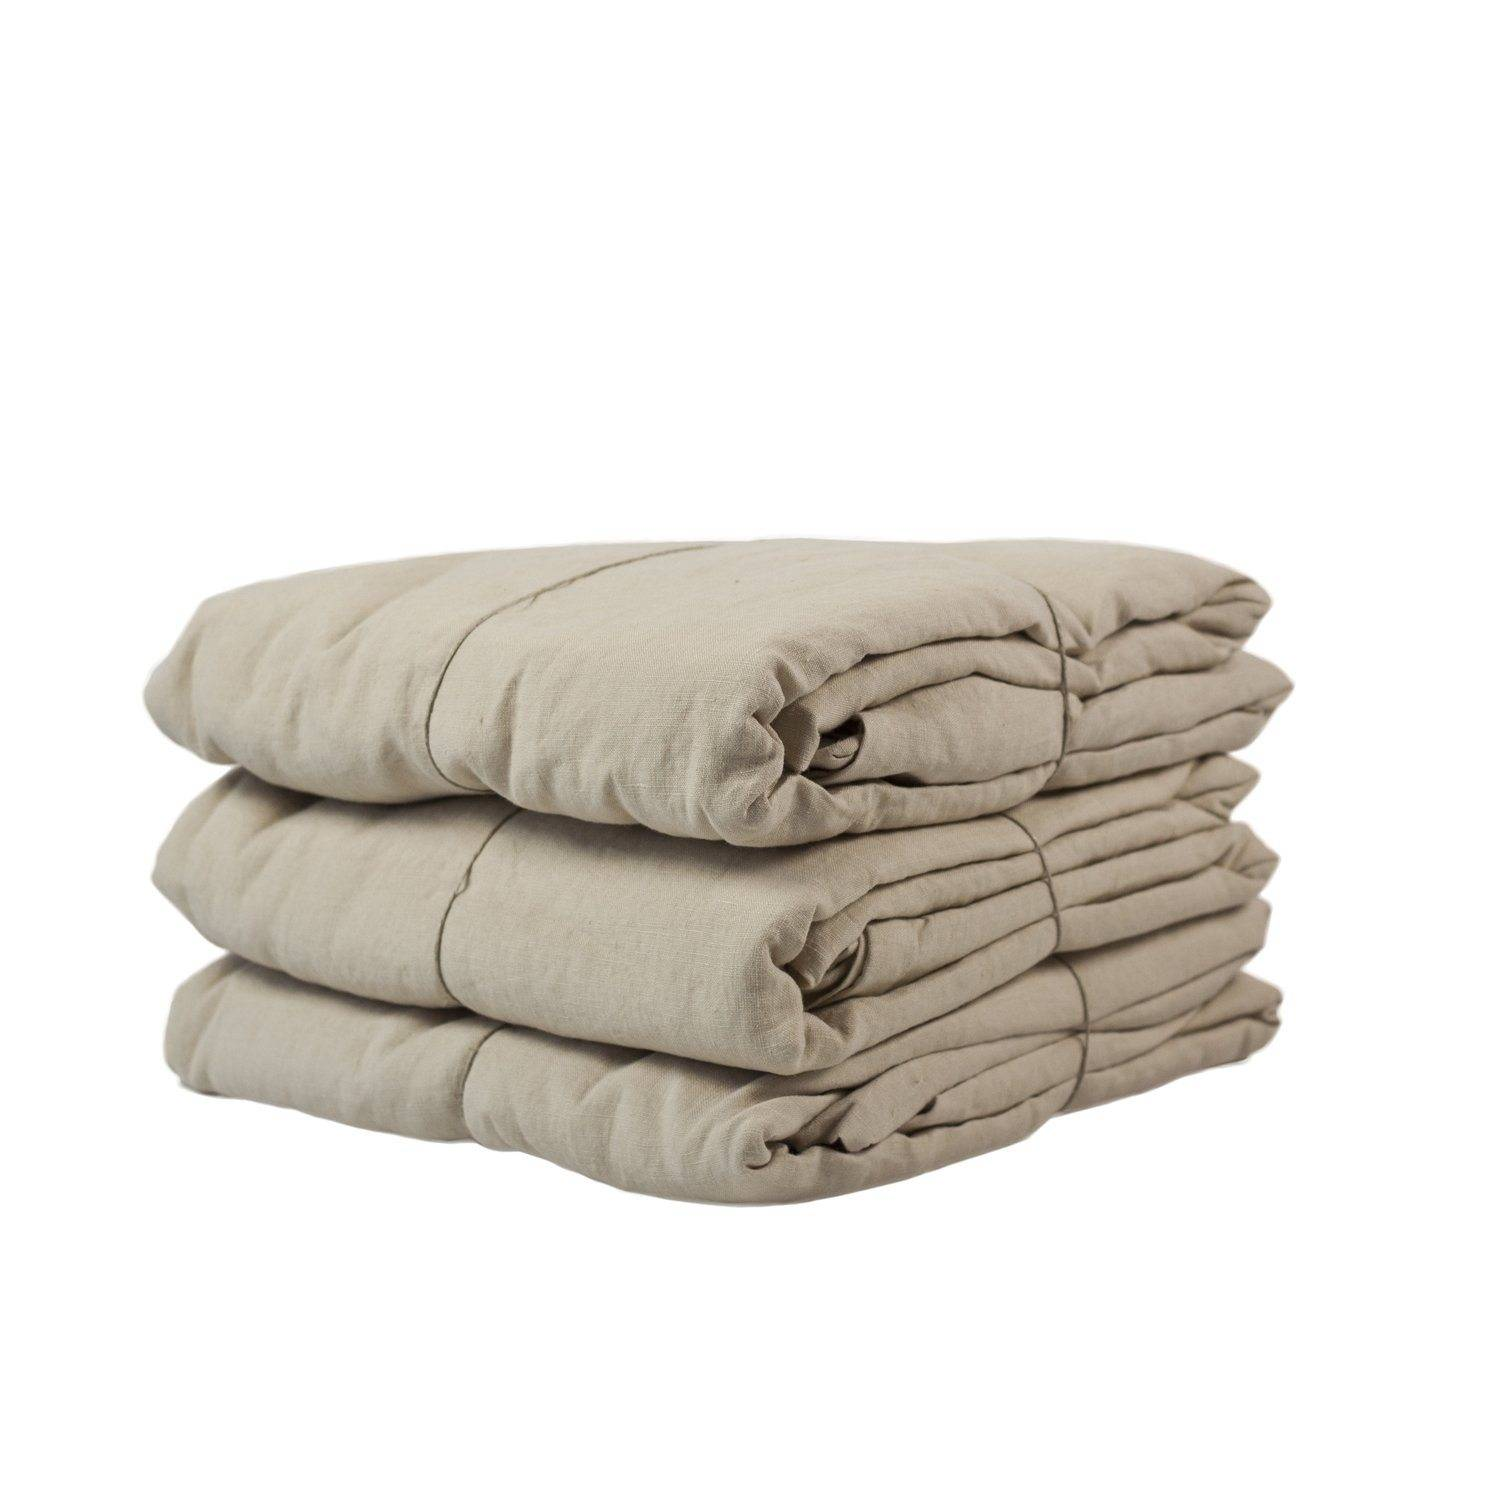 Tell Me More Washed Linen Duvet Cover 240x220 cm, Sand